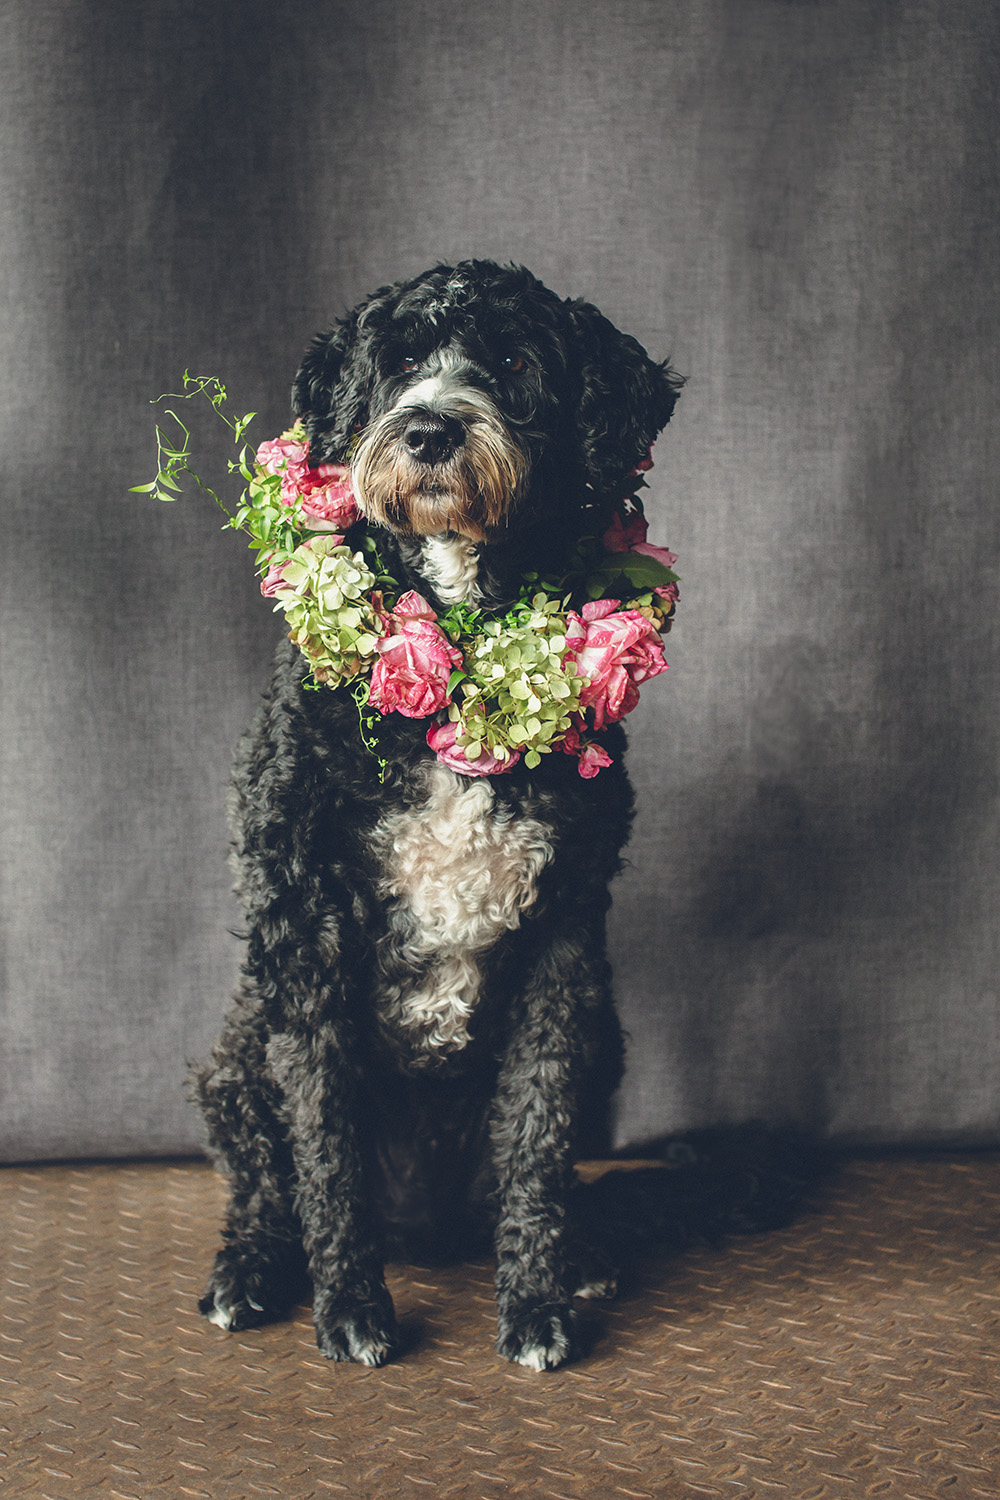 dogs-flowercrown-ihw-034